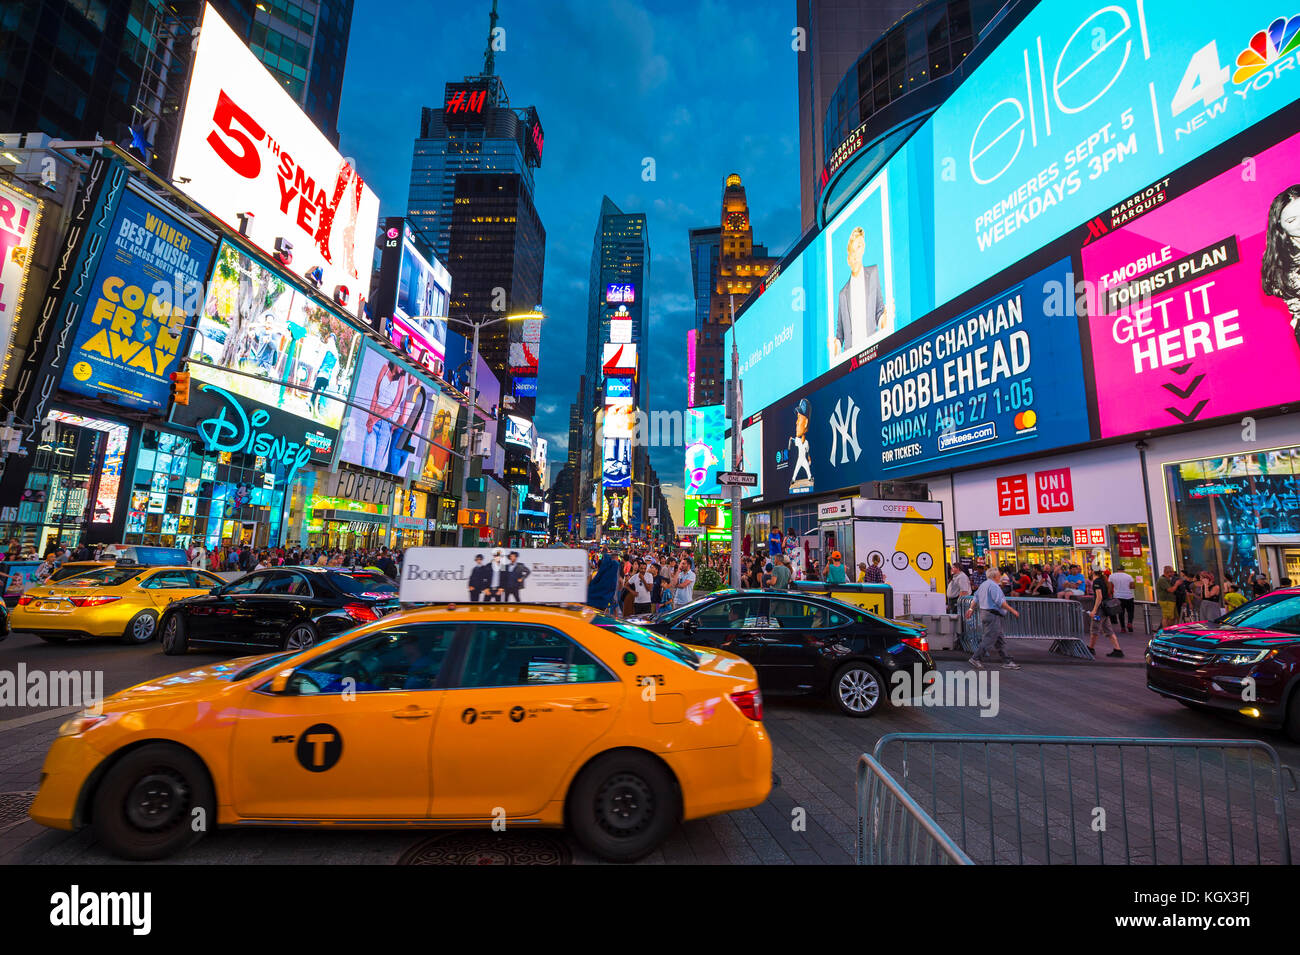 NEW YORK CITY - AUGUST 23, 2017: Bright signage flashes over holiday crowds and traffic zooming past as Times Square - Stock Image